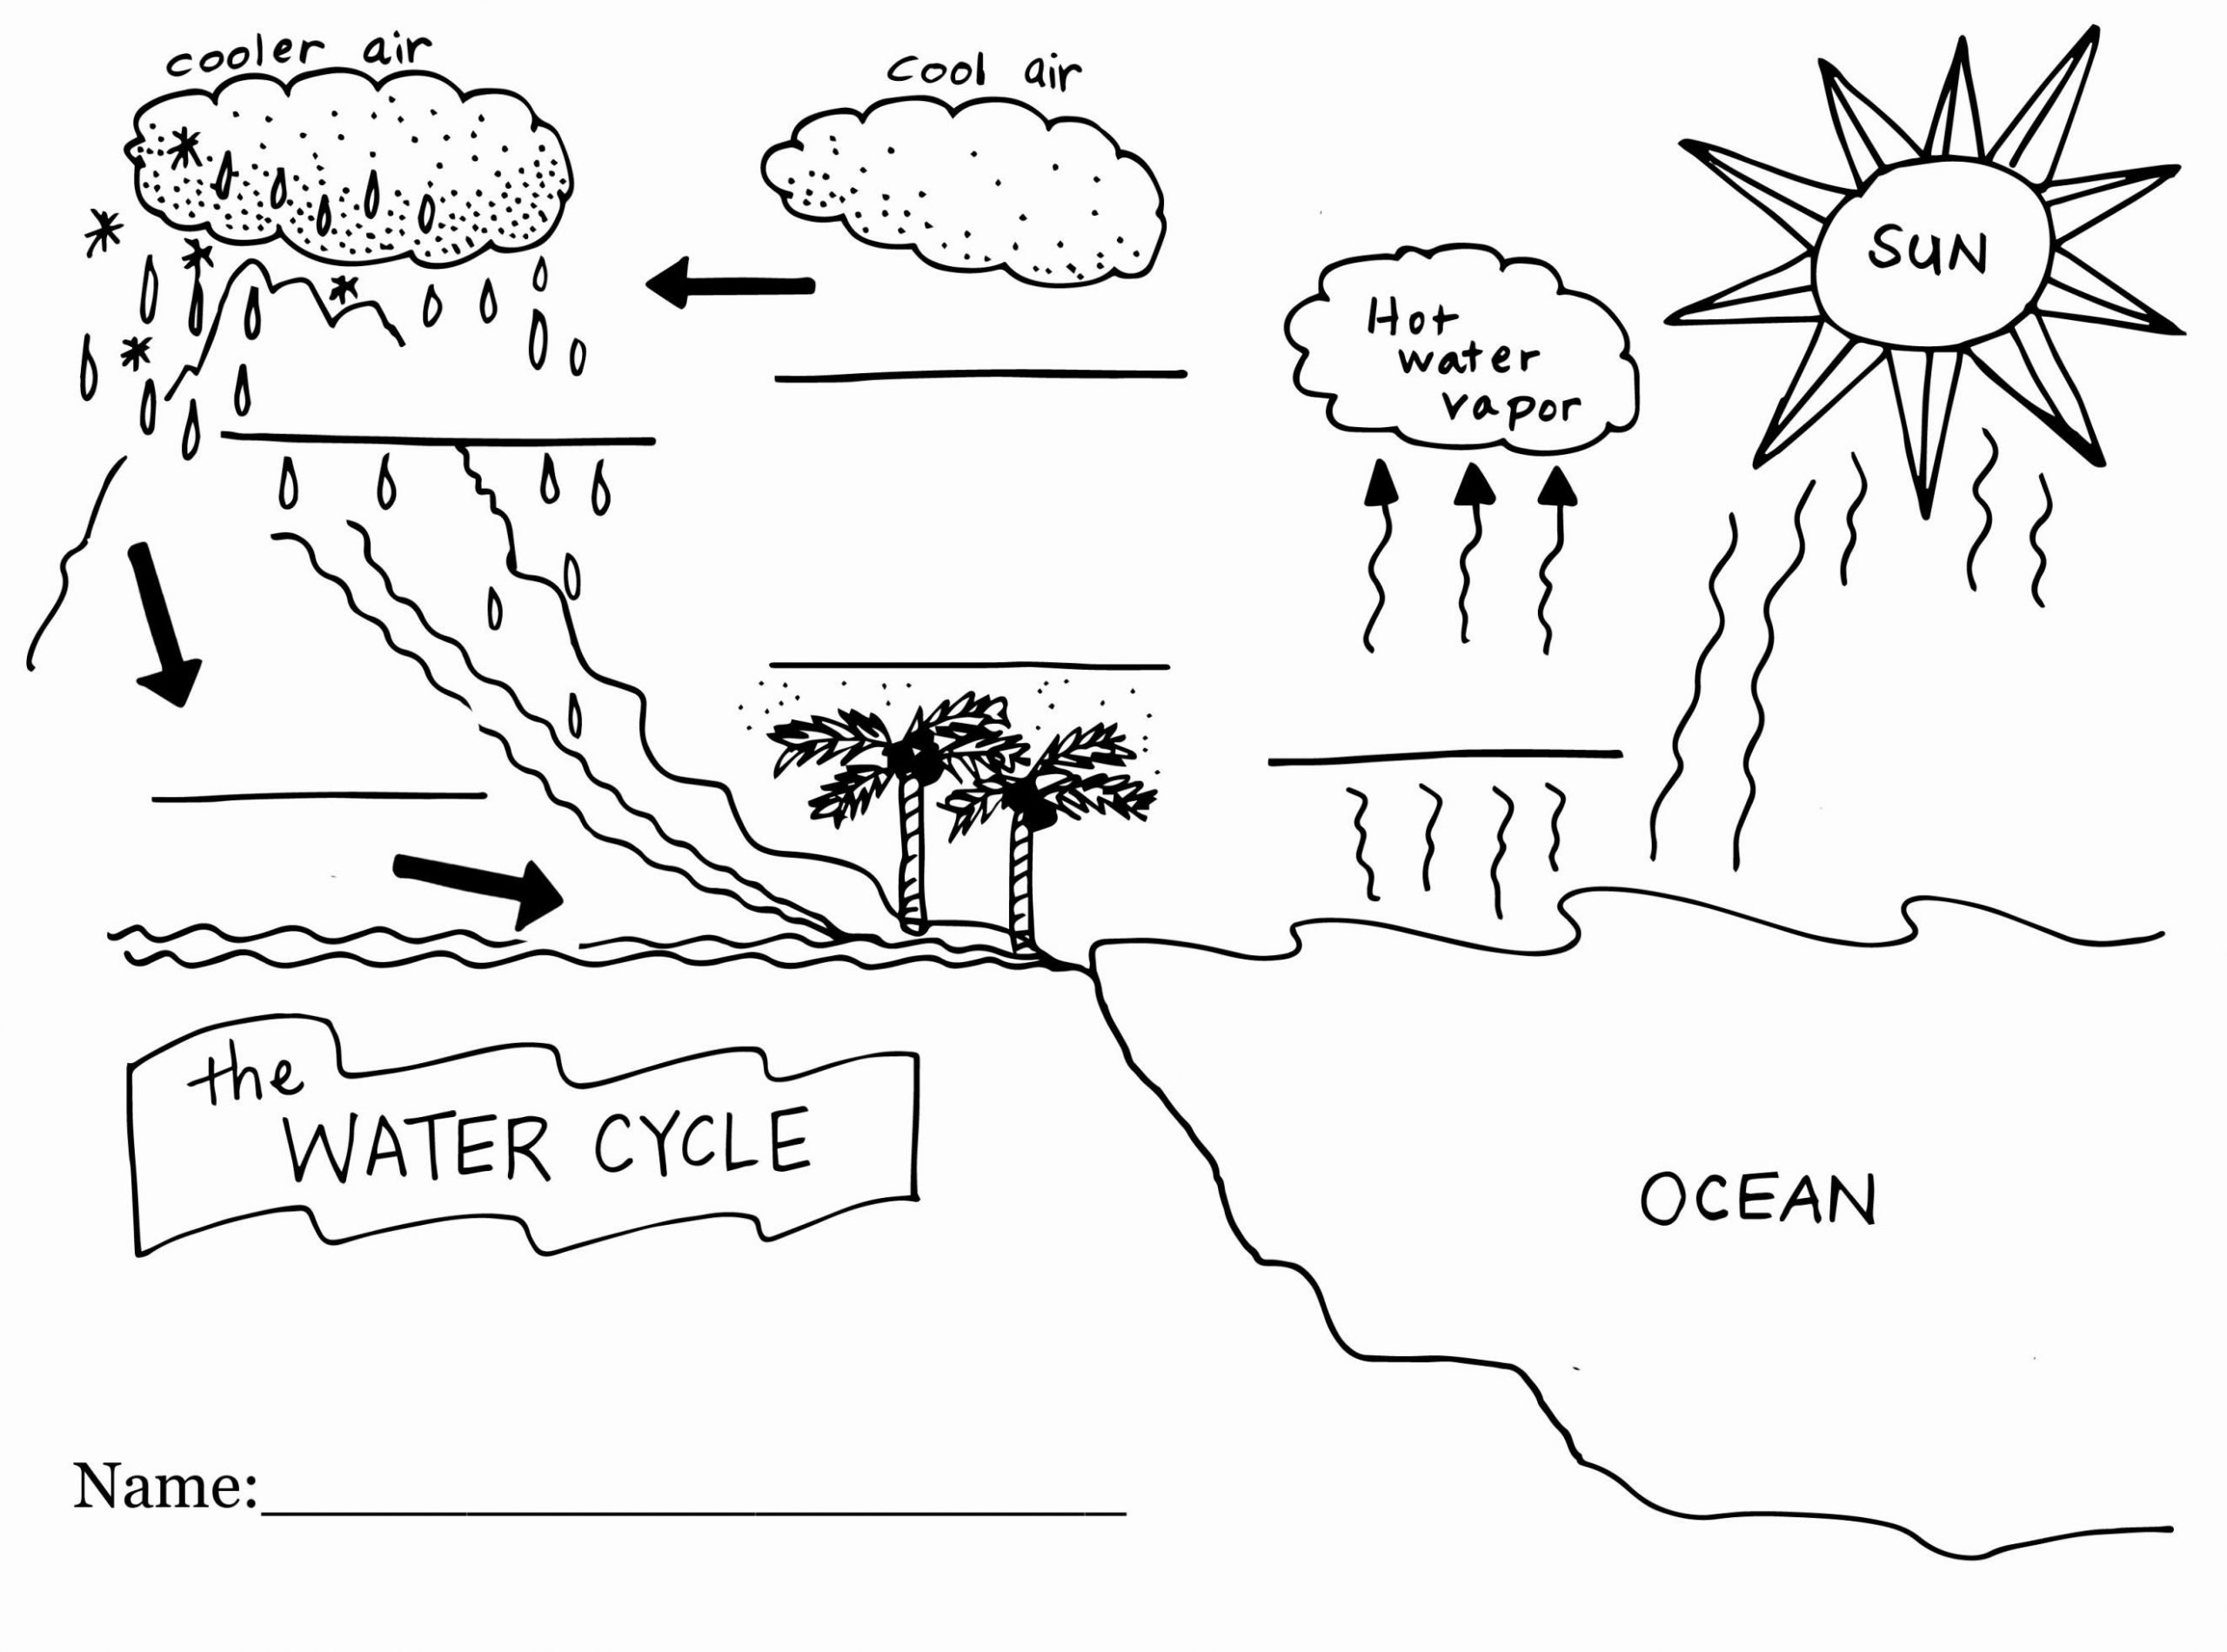 water cycle fill in the blank worksheet water cycle coloring pages perfect water cycle fill in the blank worksheet answers gc66